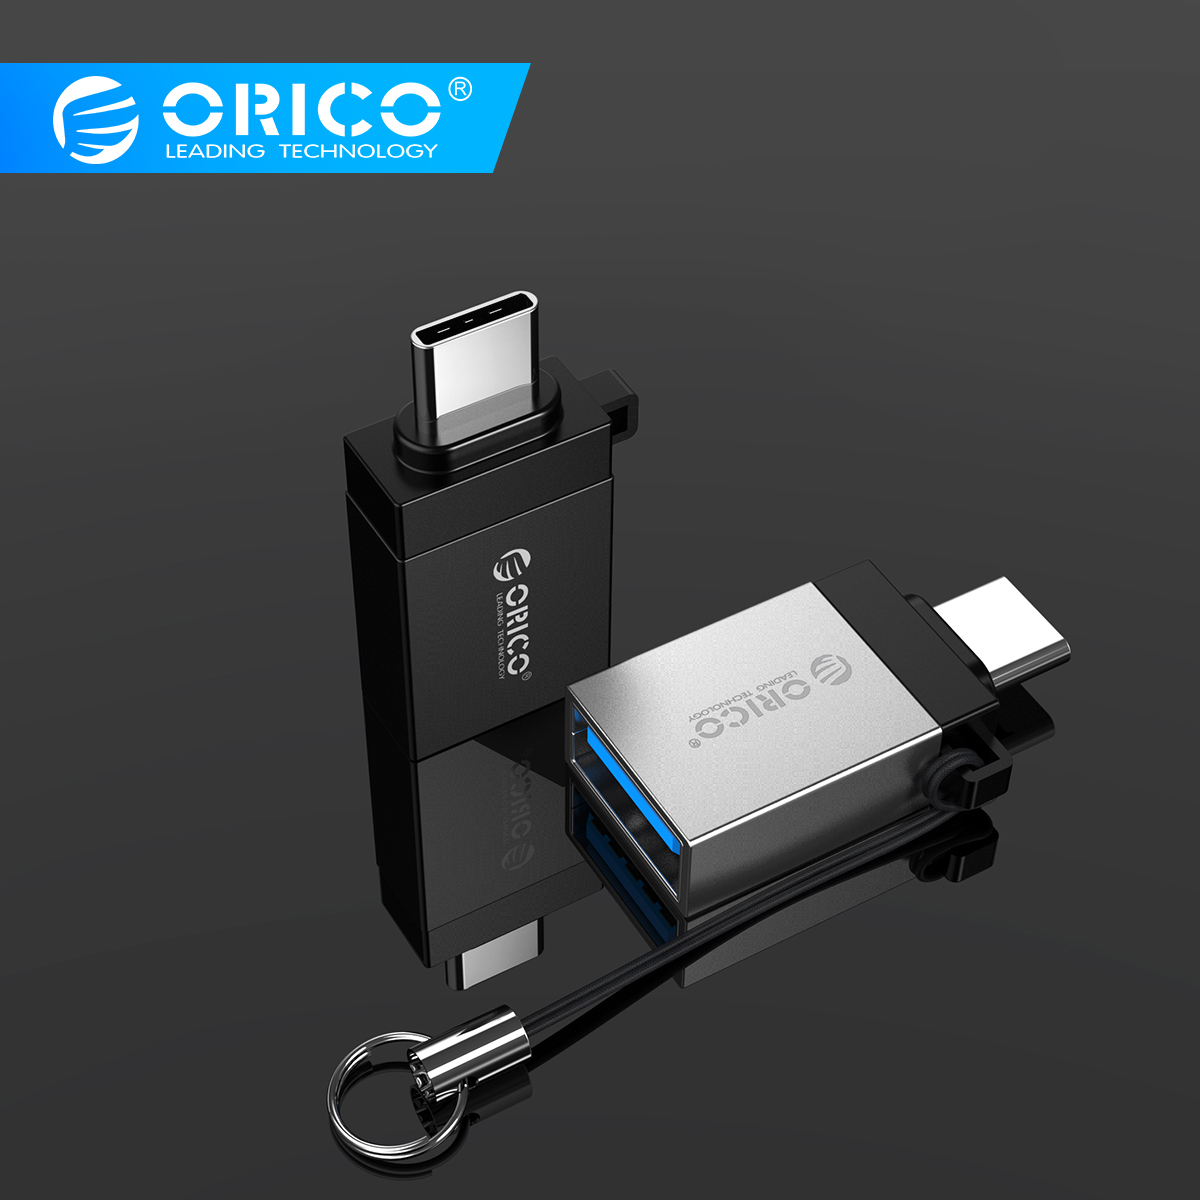 ORICO OTG USB 3.0 To Type C Micro B USB Type-C OTG Adapter Converter For Samsung Macbook OPPO Adapter